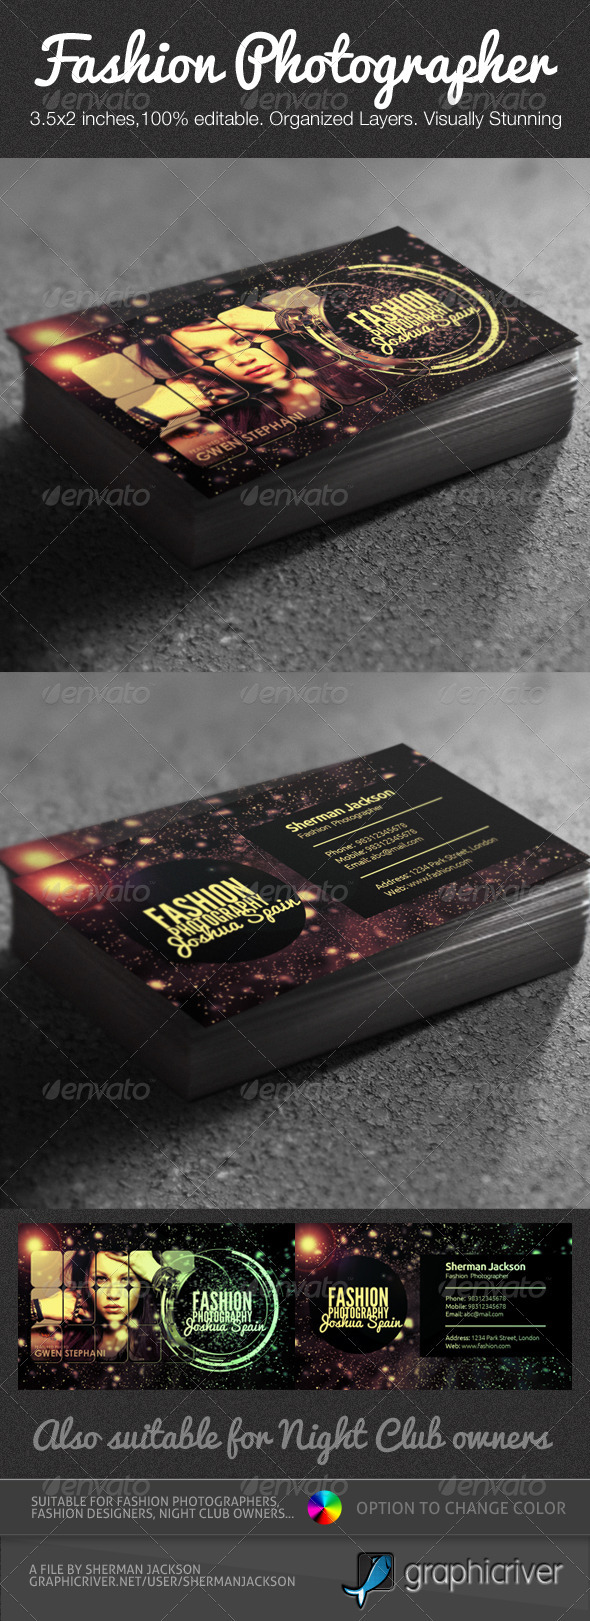 Creative Fashion Photographer Business Card PSD - Industry Specific Business Cards